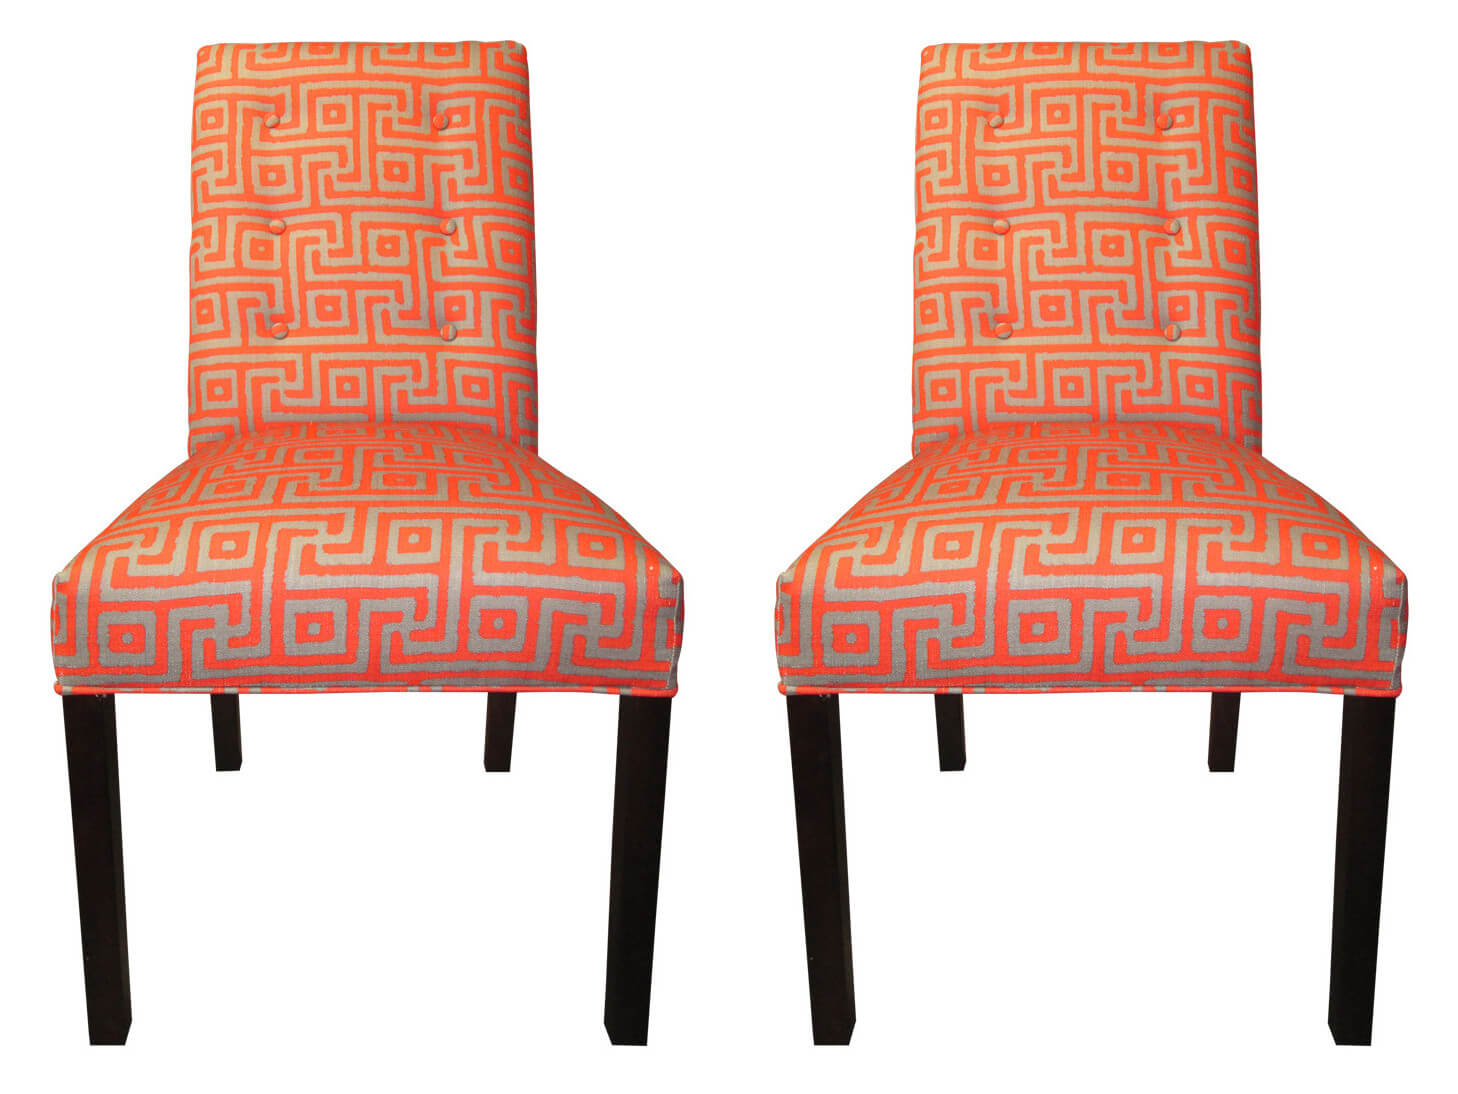 First created in the 1930's, the original design sought to retain function and comfort while removing excess ornamentation that tended to dominate the furniture designs of the time. The end result is a simple chair with clean lines that would fit nicely into just about any area of the home.